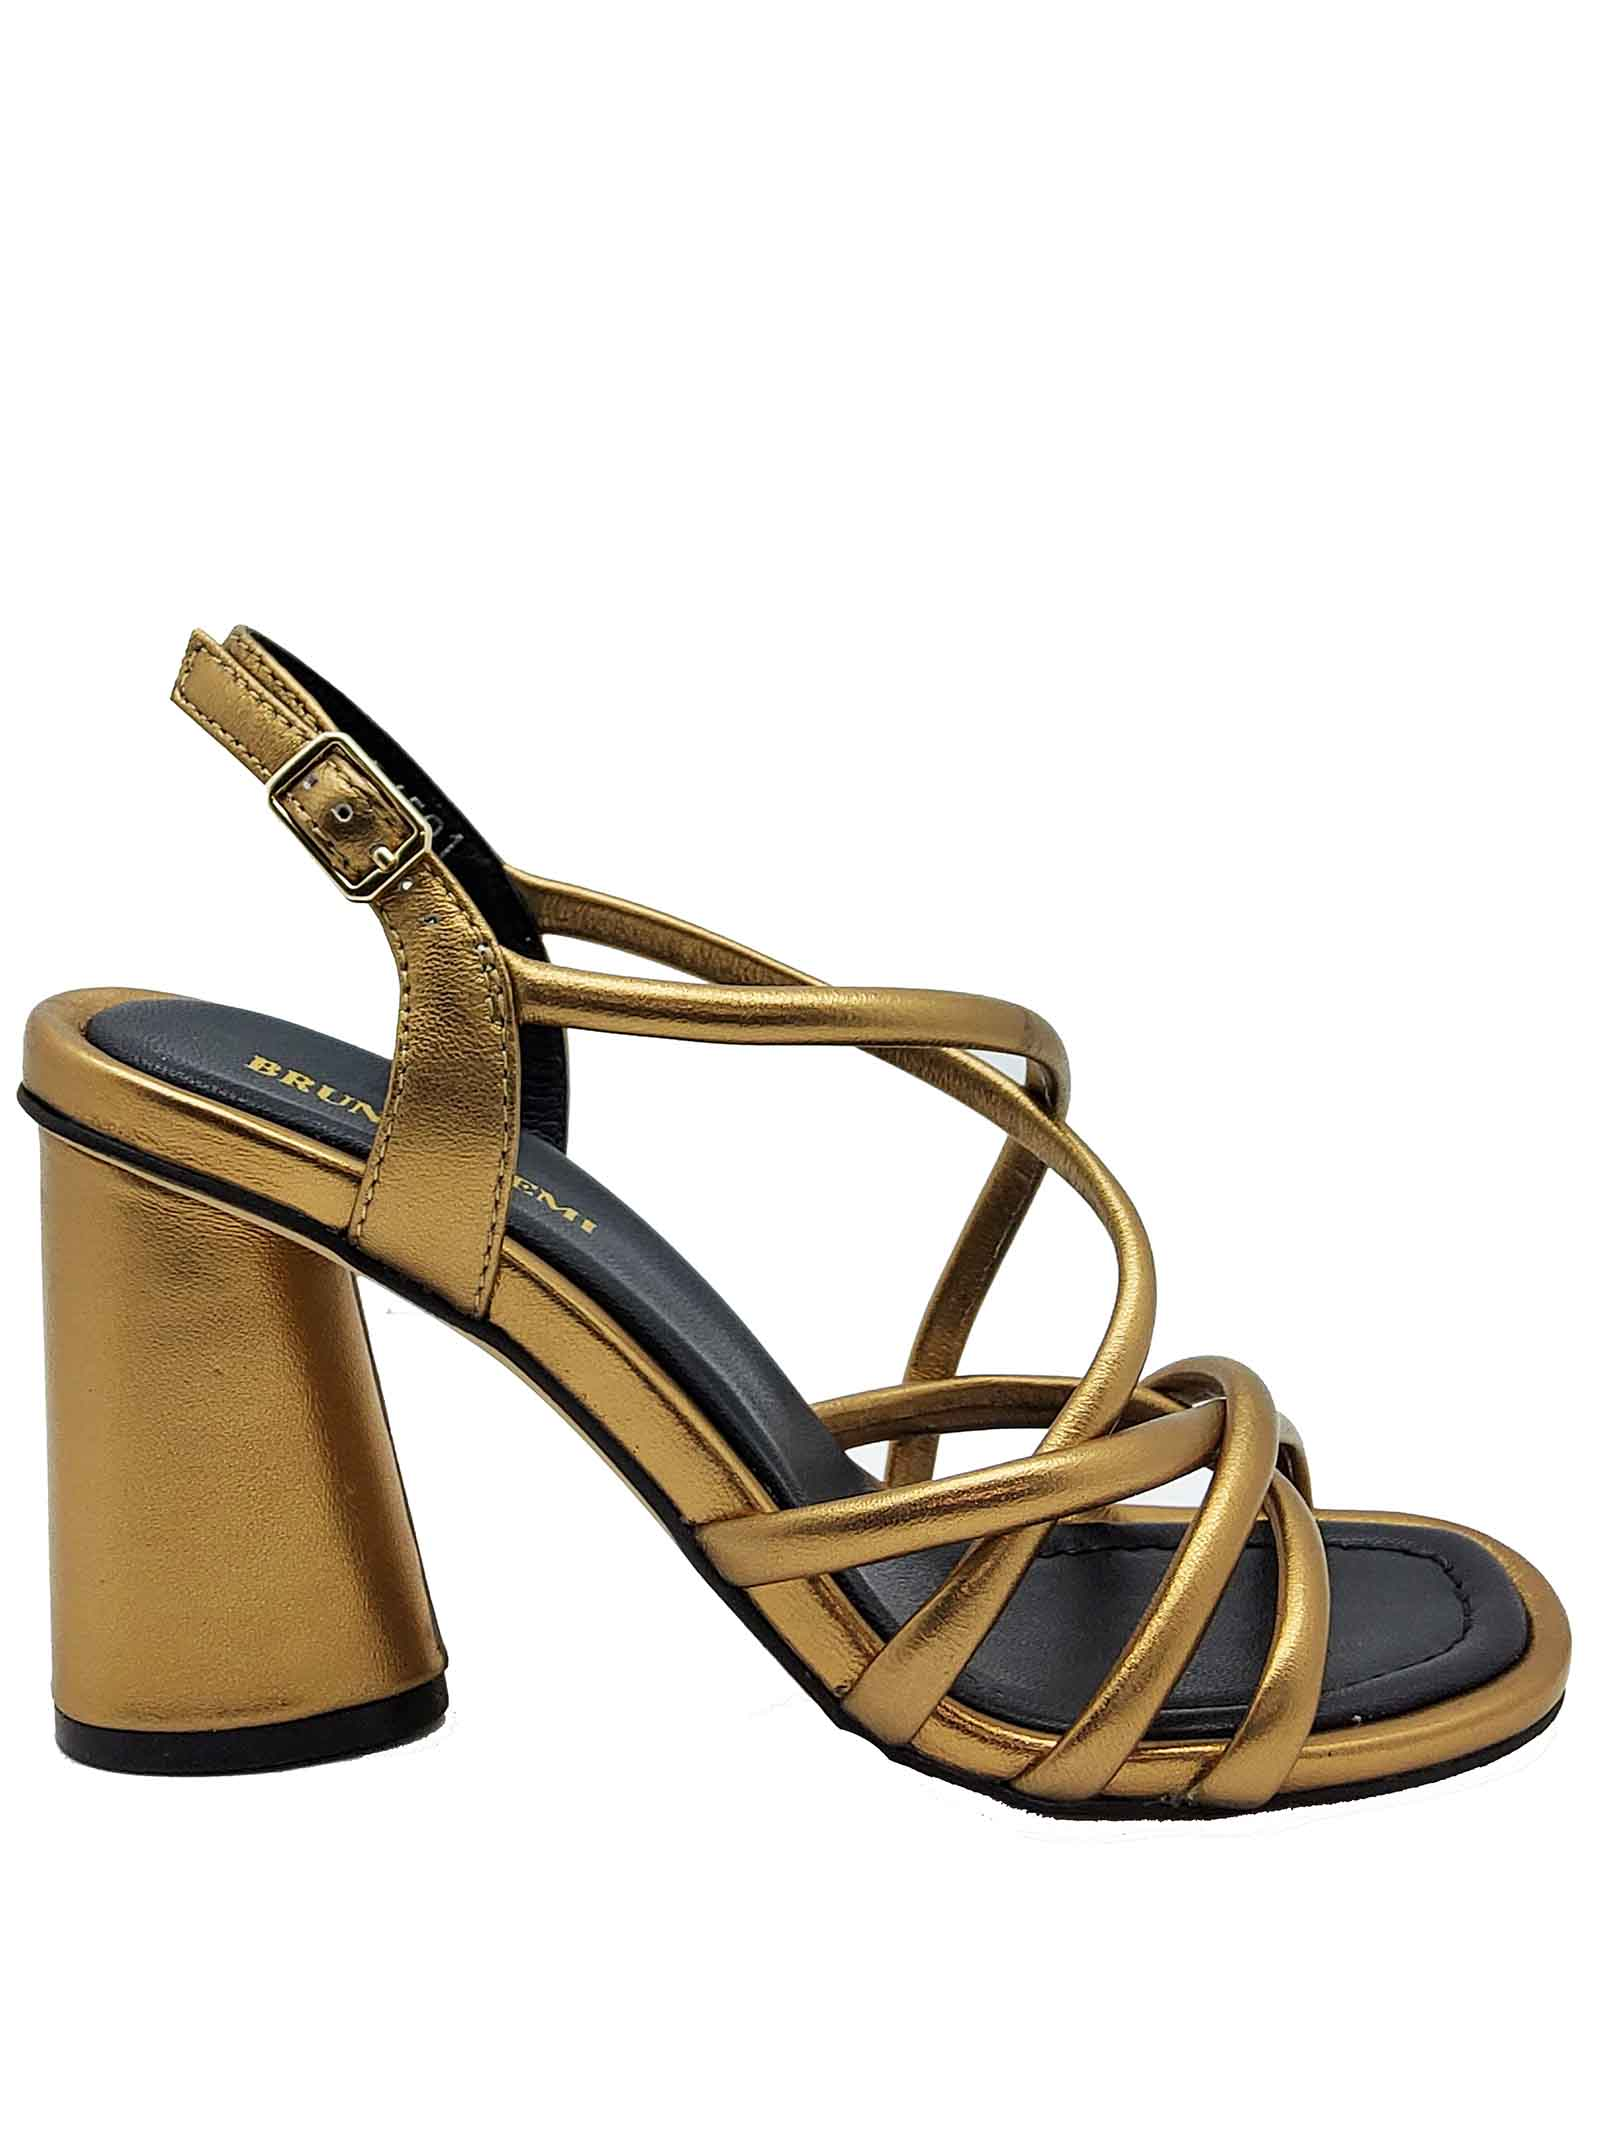 Women's Shoes Gold Laminated Leather Sandals with Foot Neck Strap and Ankle Strap Bruno Premi | Sandals | BB1703X602